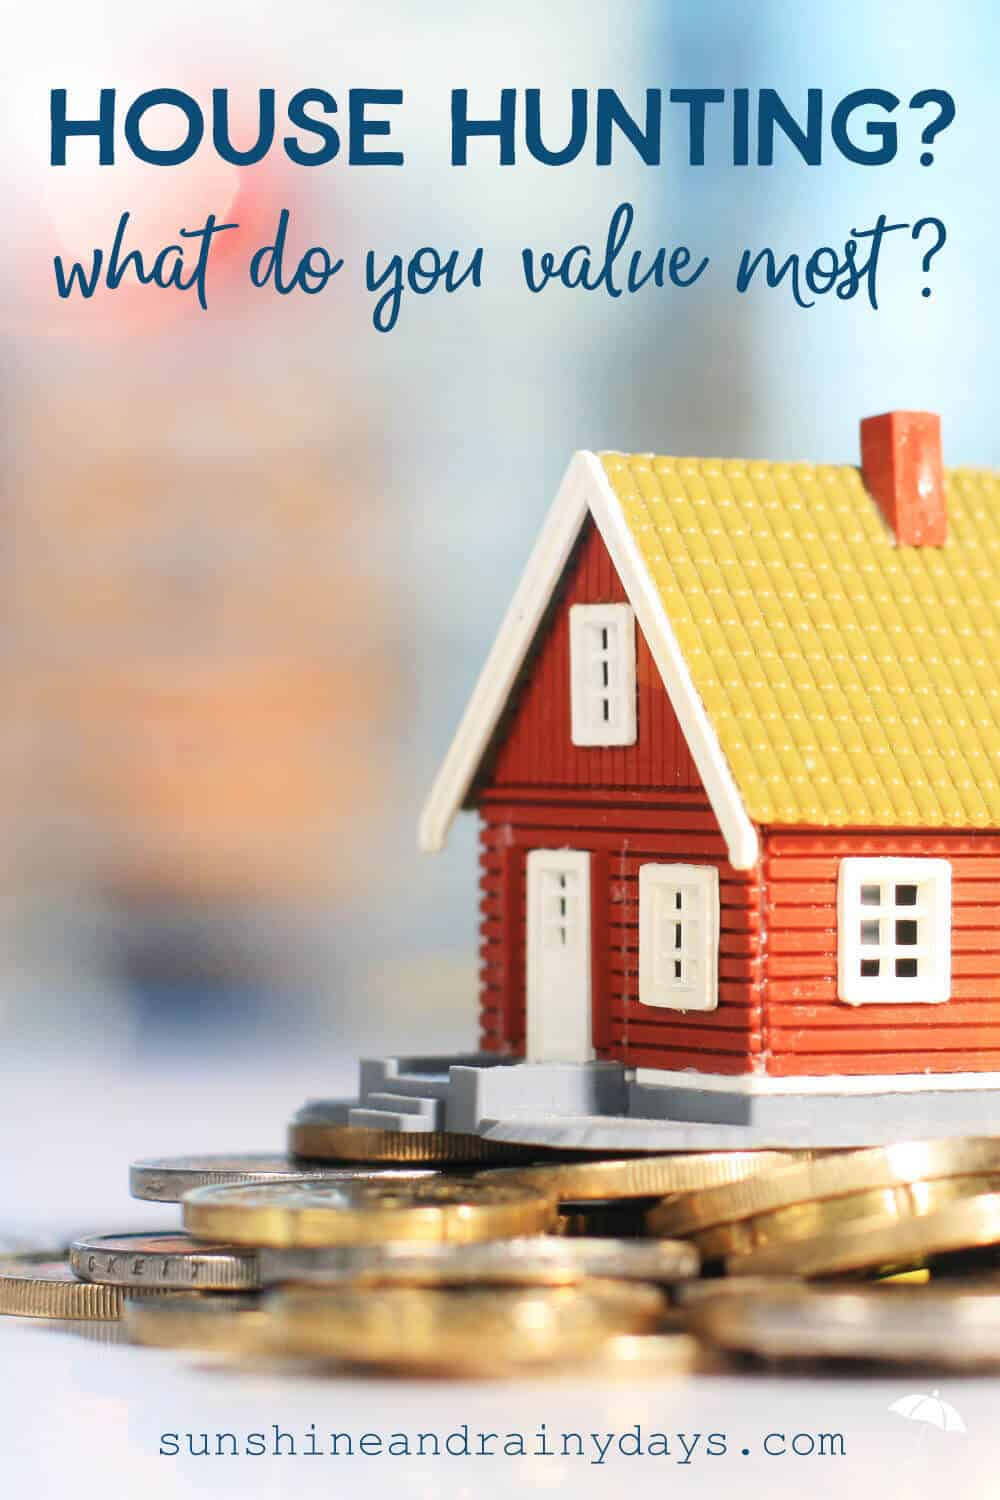 What do you value most in a new house